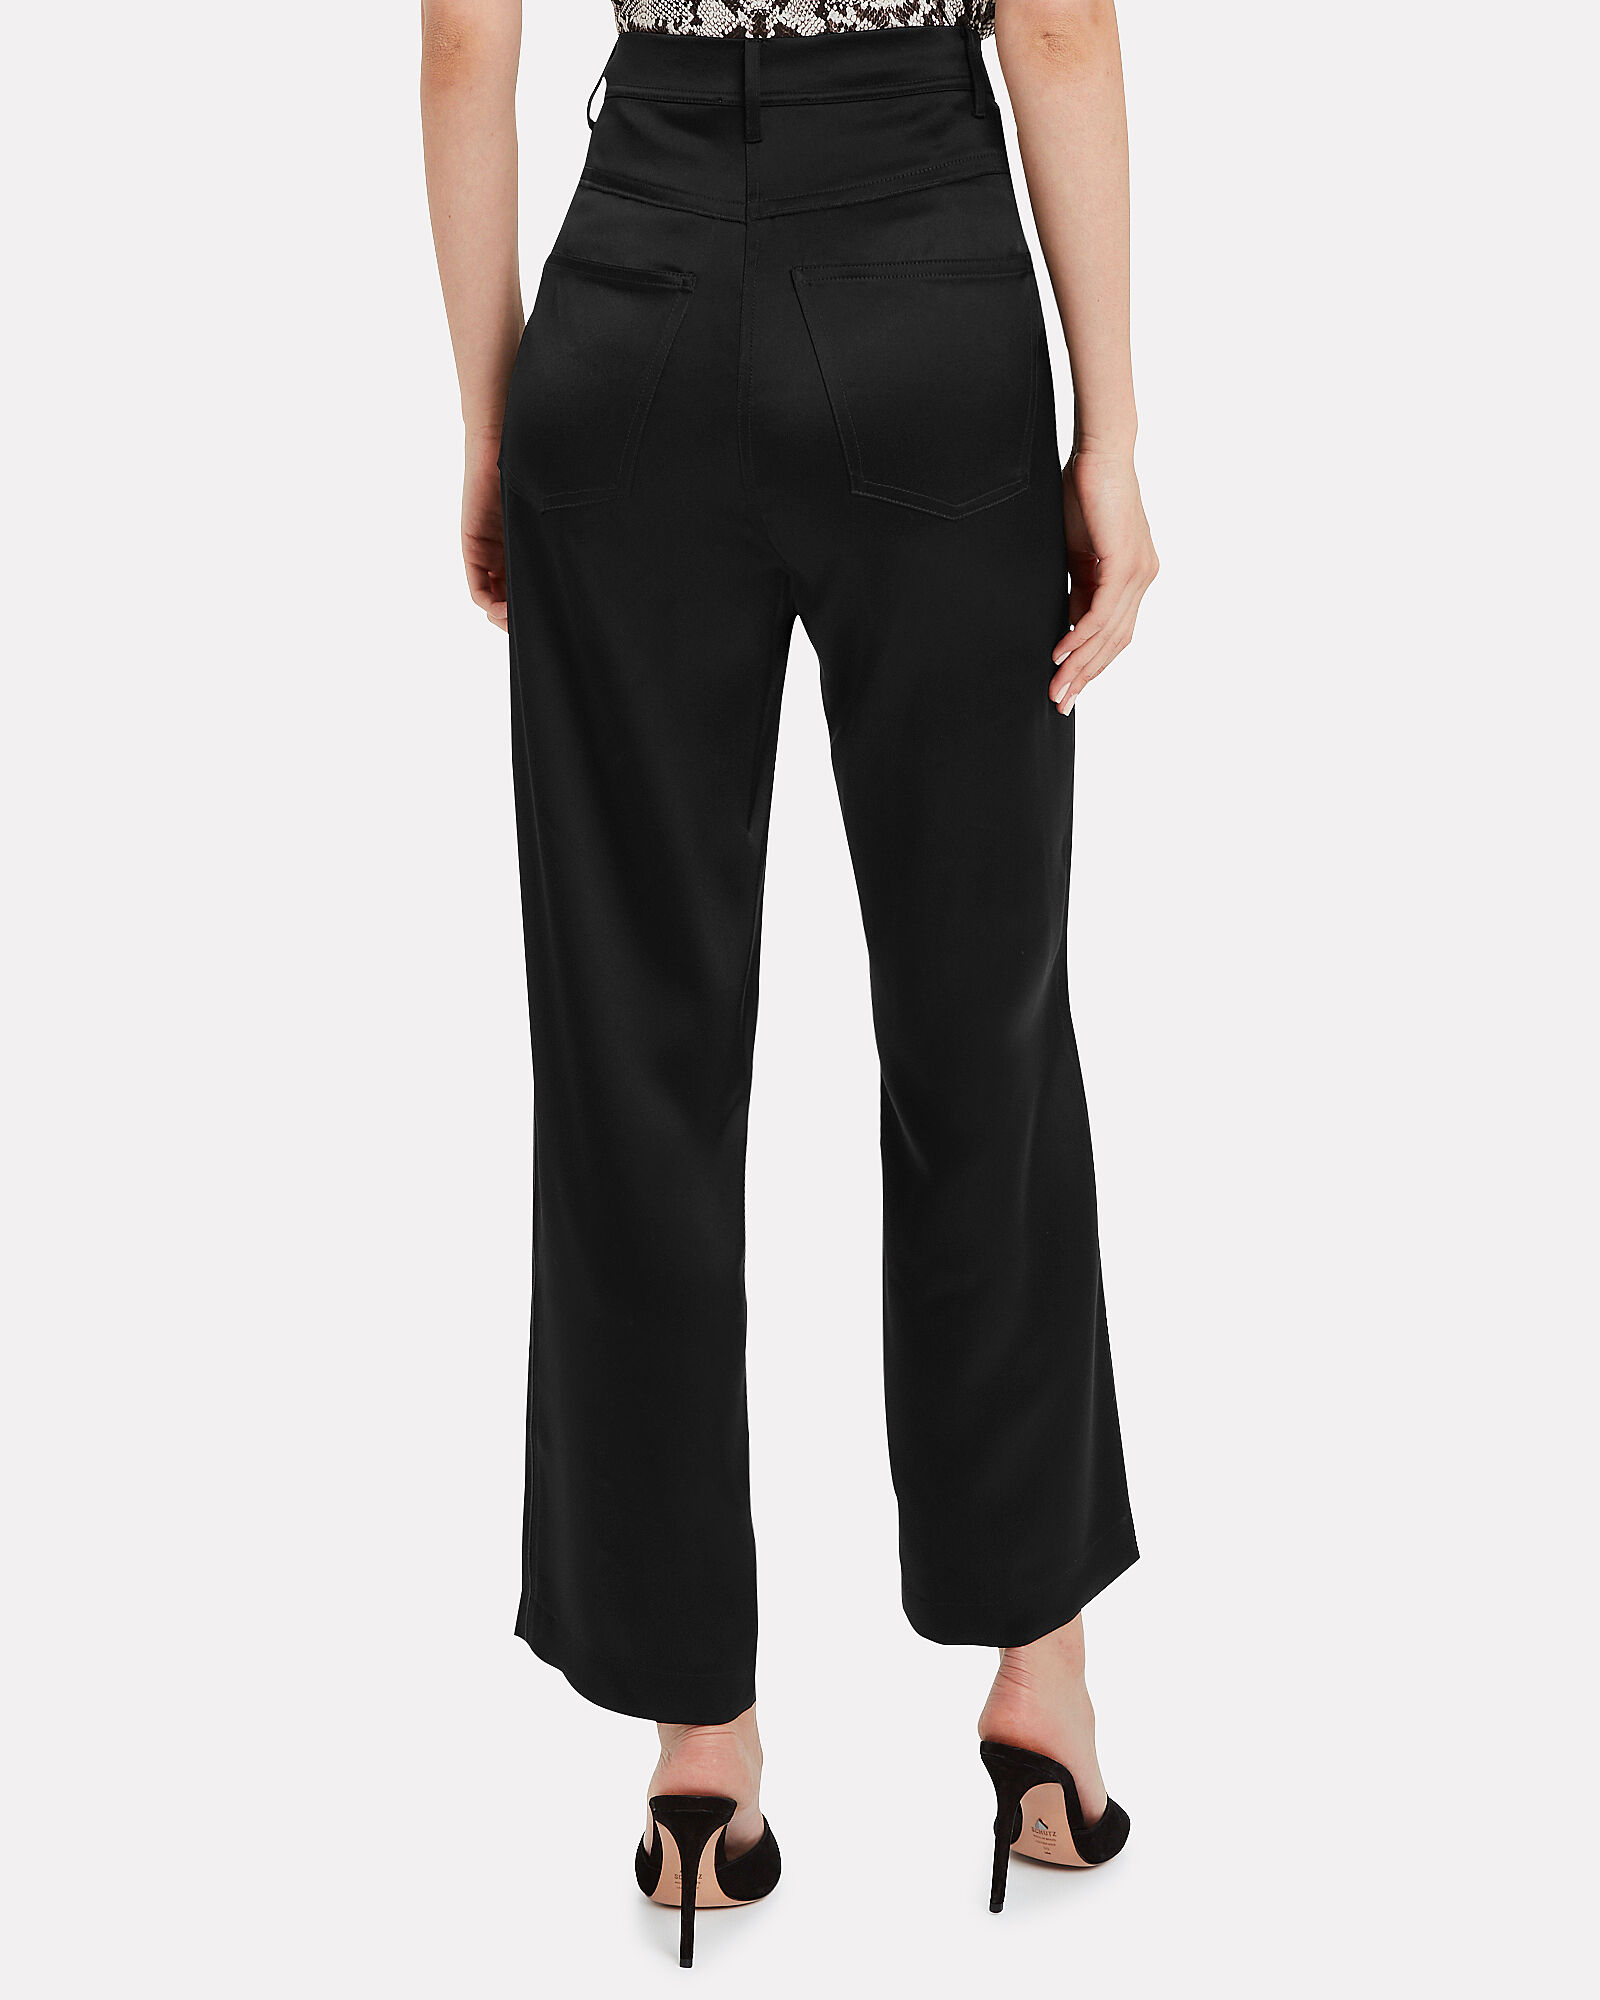 Marfa Satin Wide Leg Pants, BLACK, hi-res